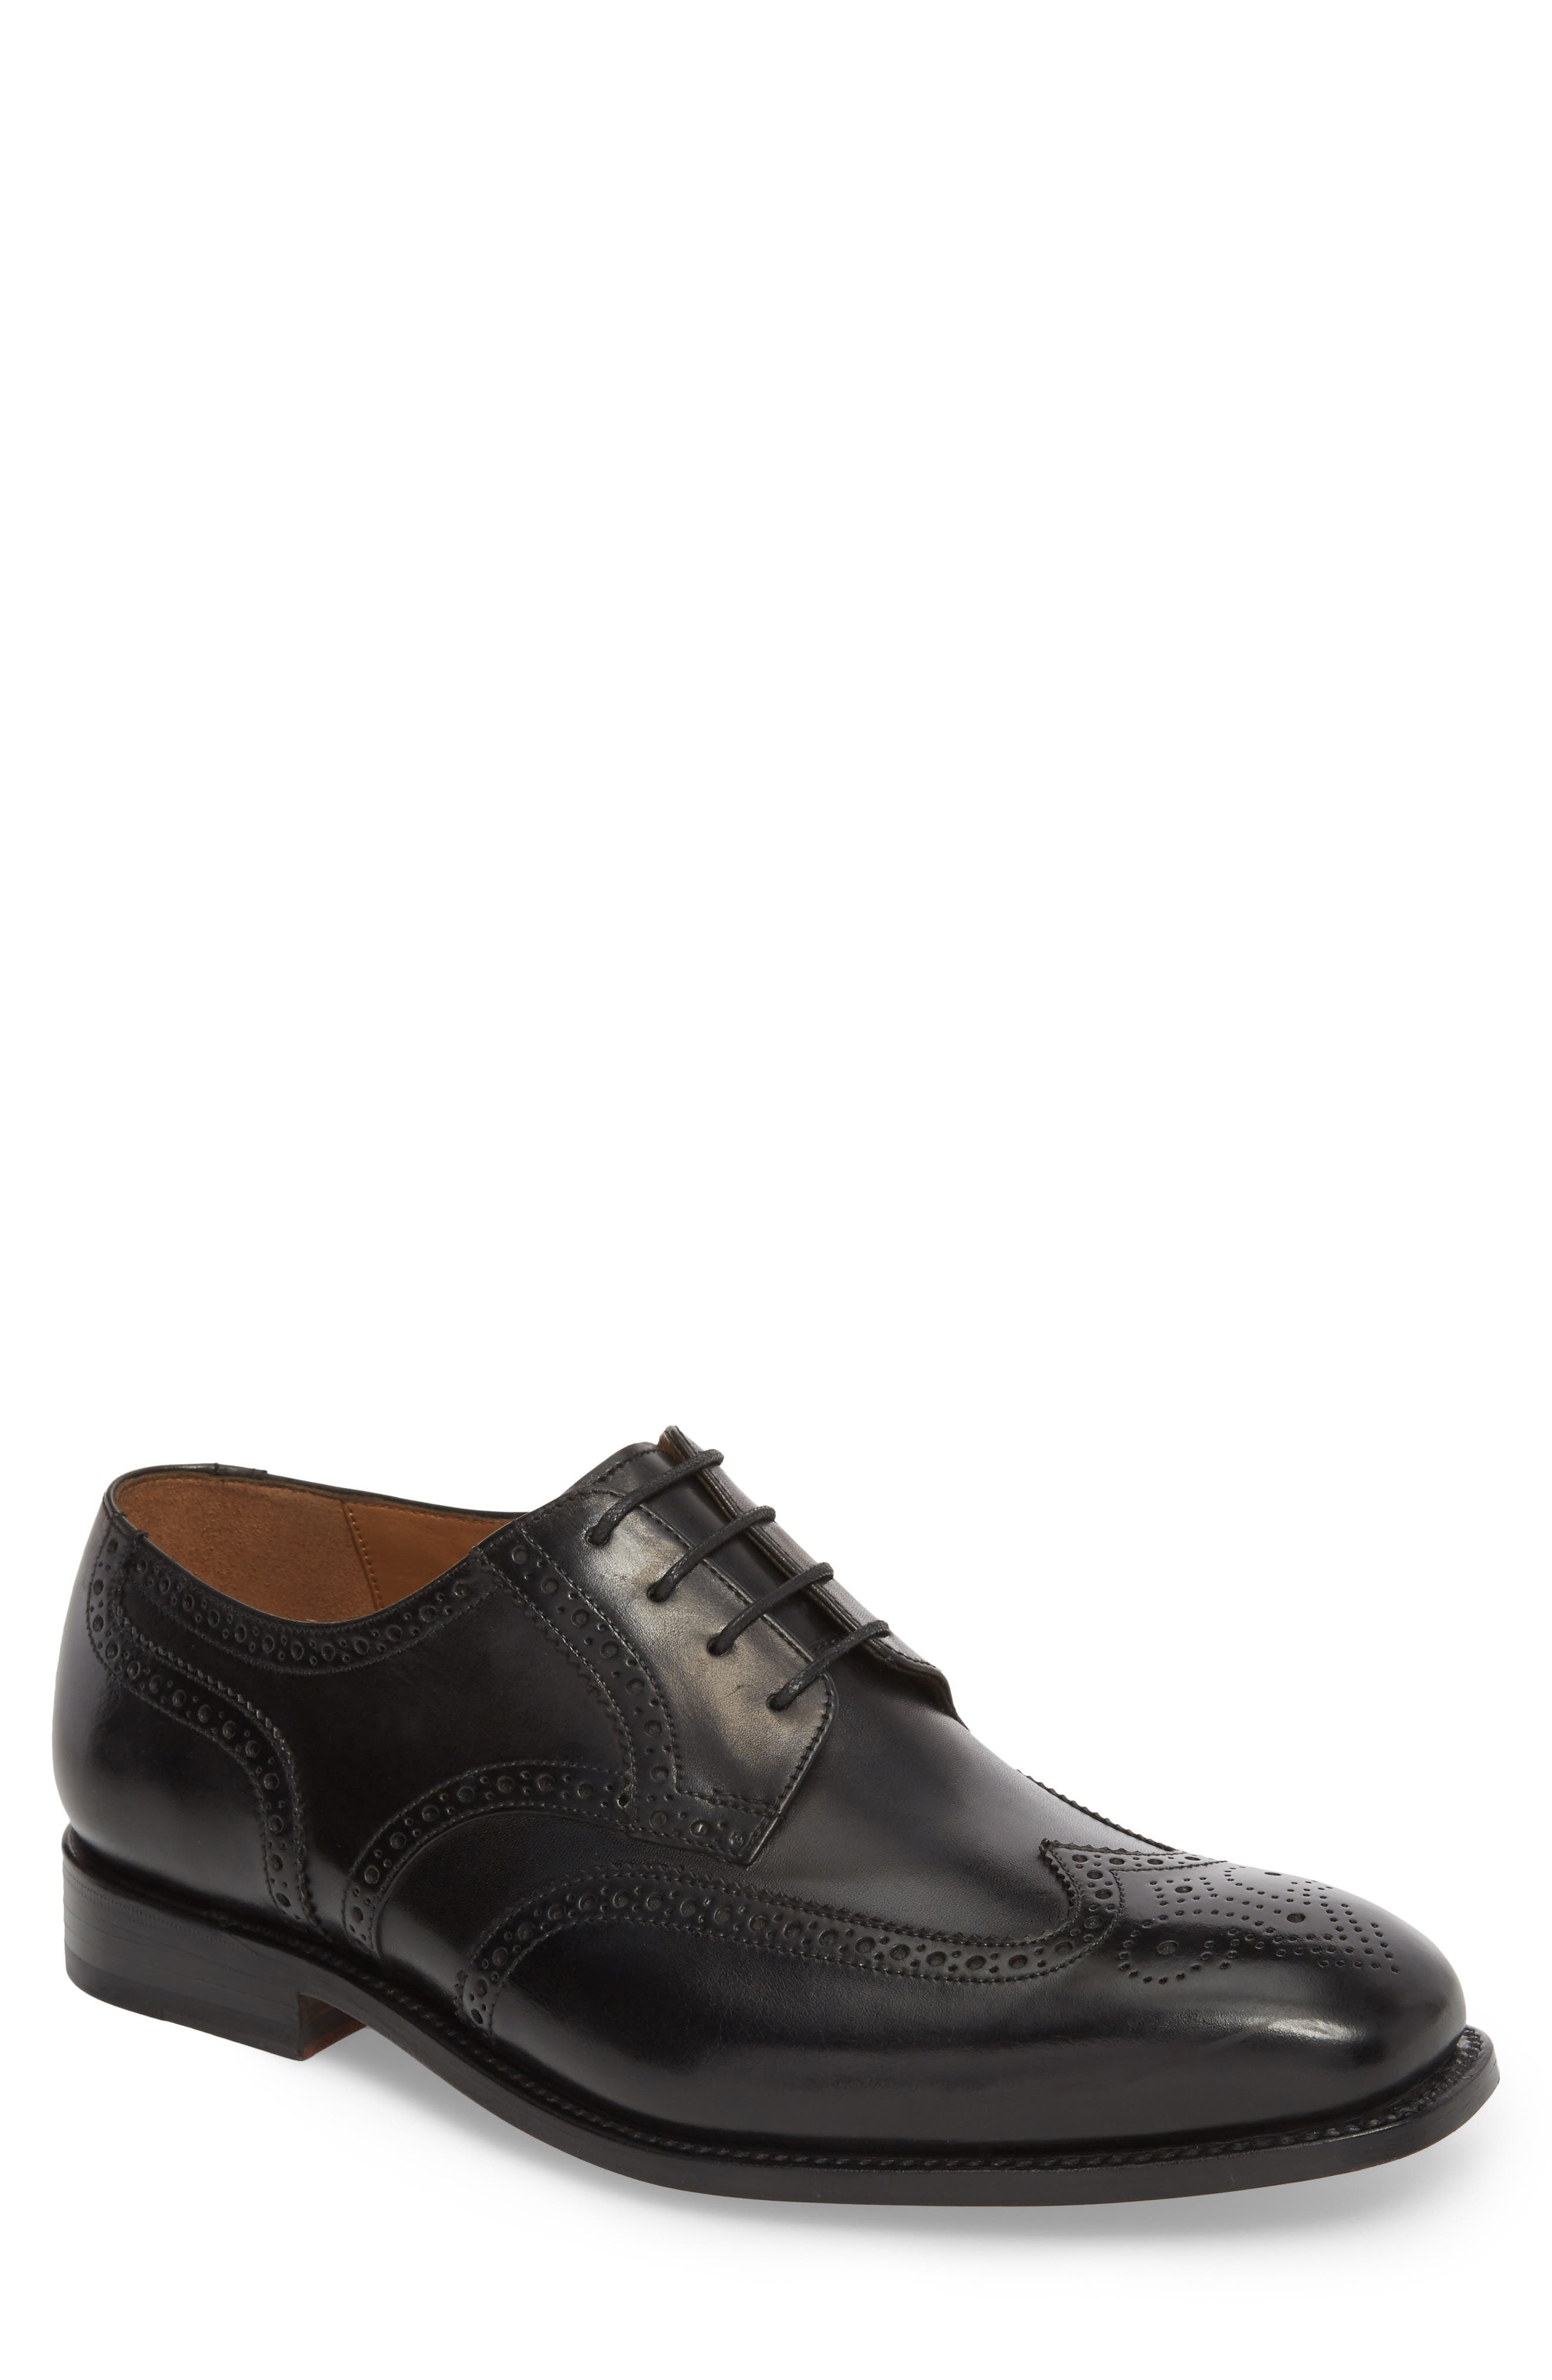 Cavallo Wingtip,                             Main thumbnail 1, color,                             BLACK LEATHER